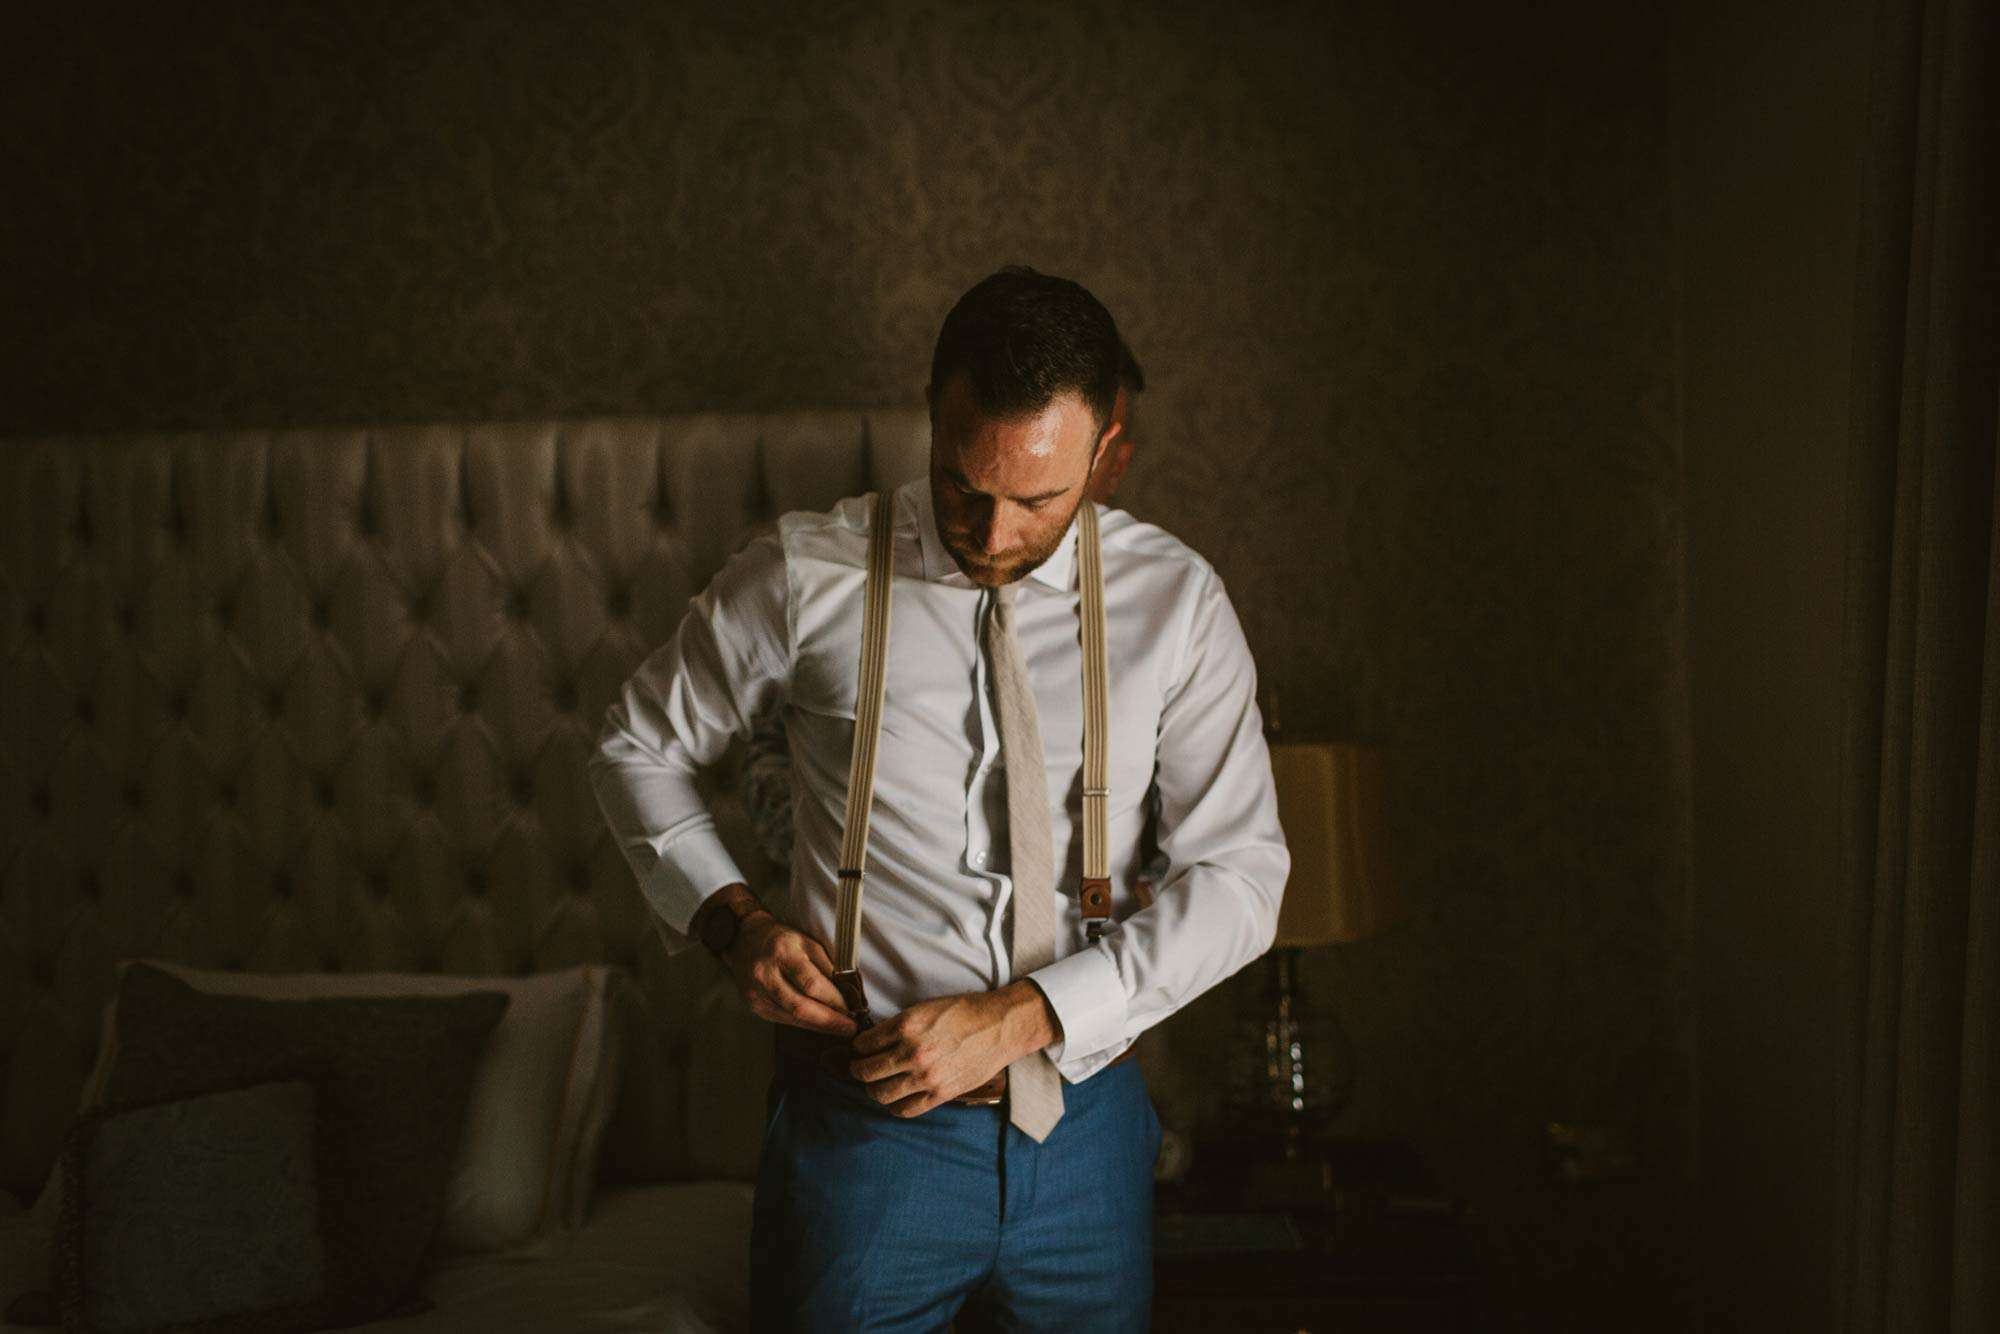 Elopement videographer Ireland, groom wearing britches